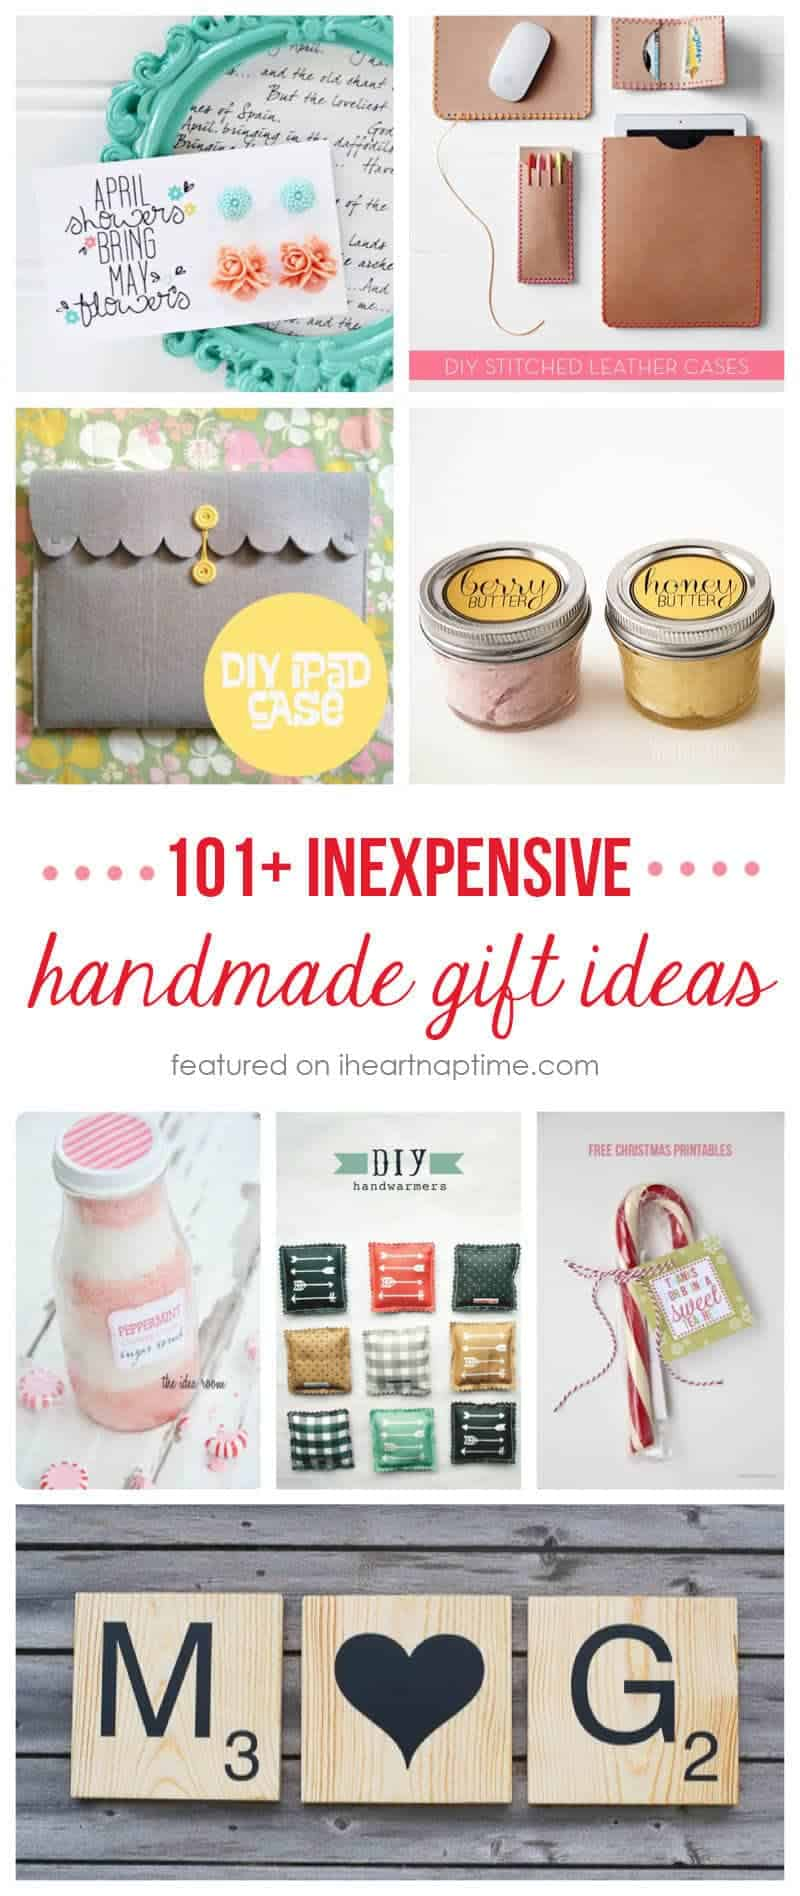 101+ inexpensive handmade gift ideas collage